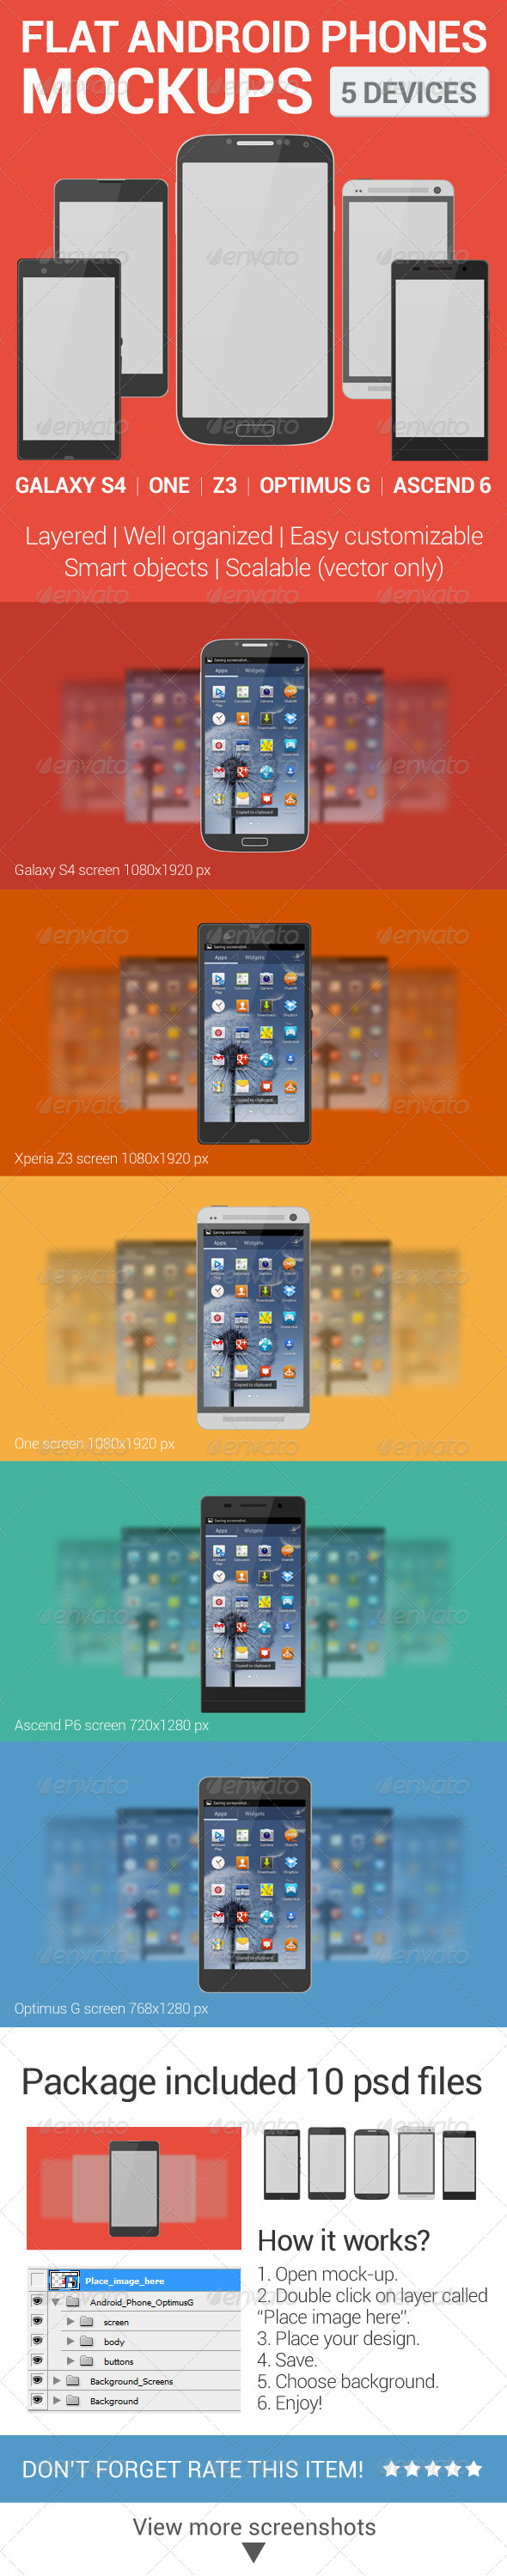 Android Phones Flat Mockups - Mobile Displays